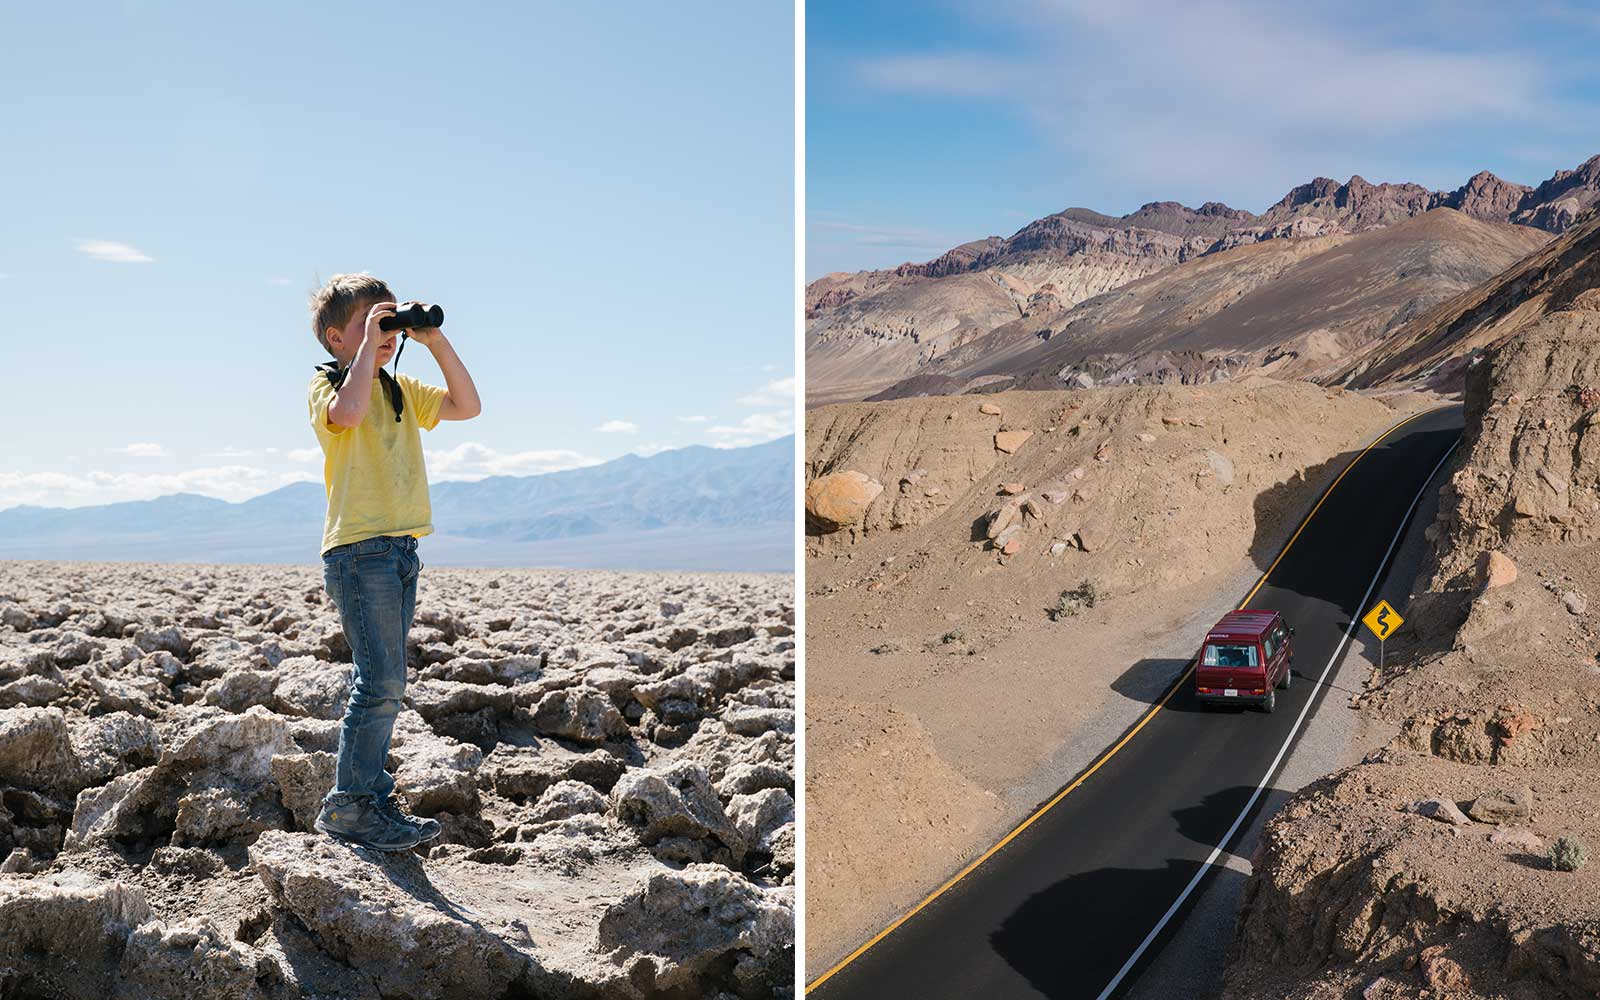 Scenes from Death Valley in California